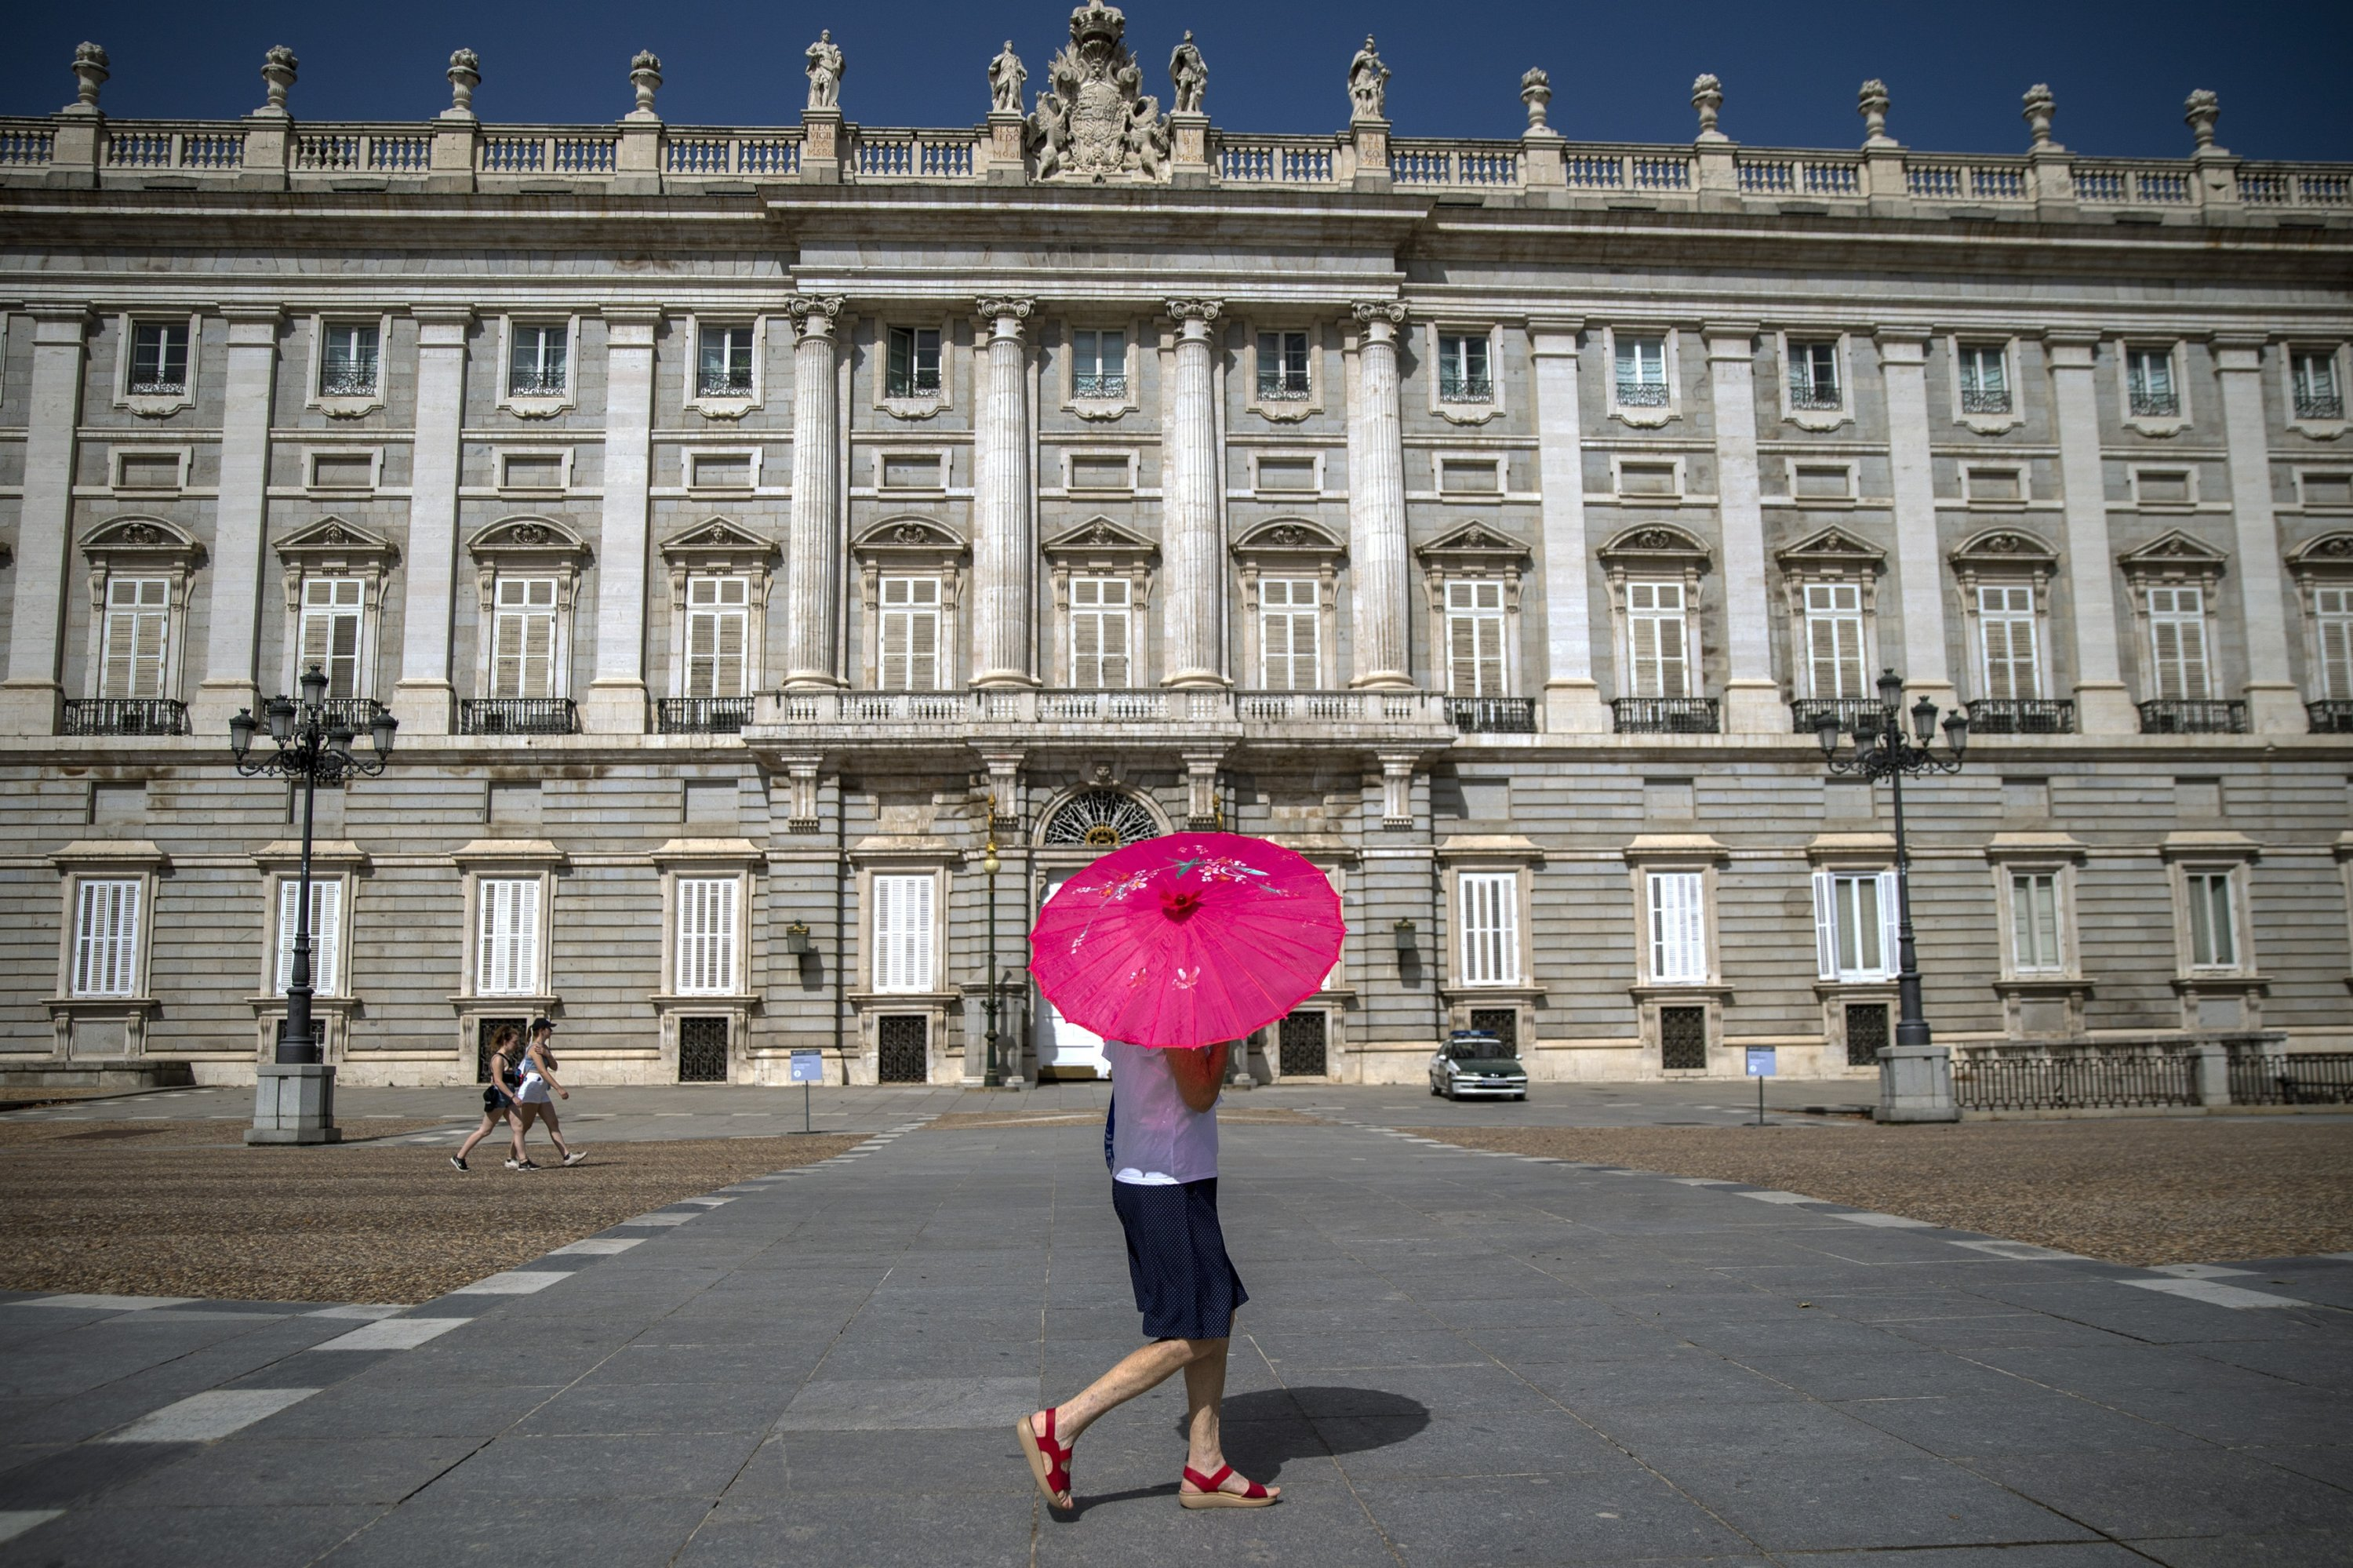 A woman with an umbrella walks past the Royal Palace during a heatwave in Madrid, Spain, Aug. 13, 2021. (AP Photo)